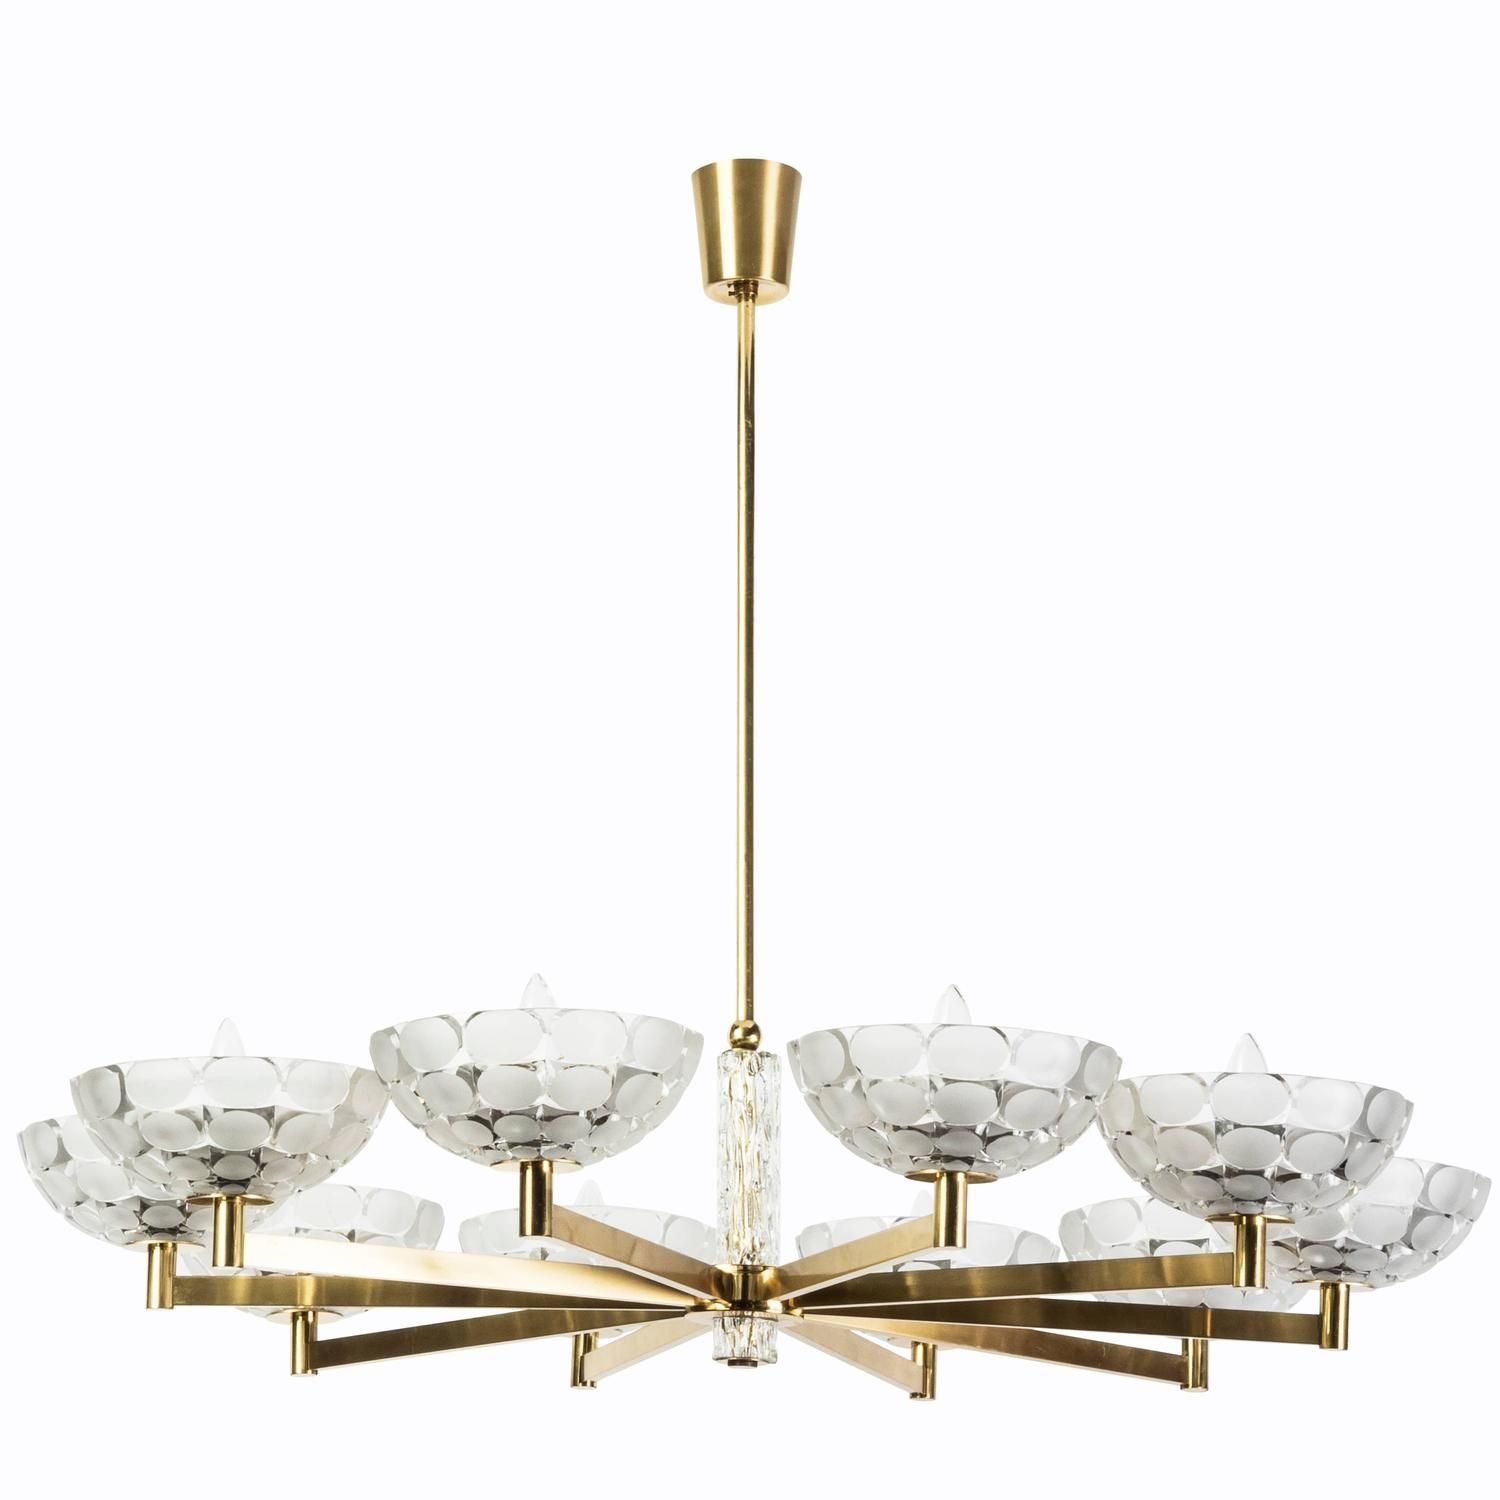 gorgeous austrian mid century modern chandelier by kalmar. Black Bedroom Furniture Sets. Home Design Ideas